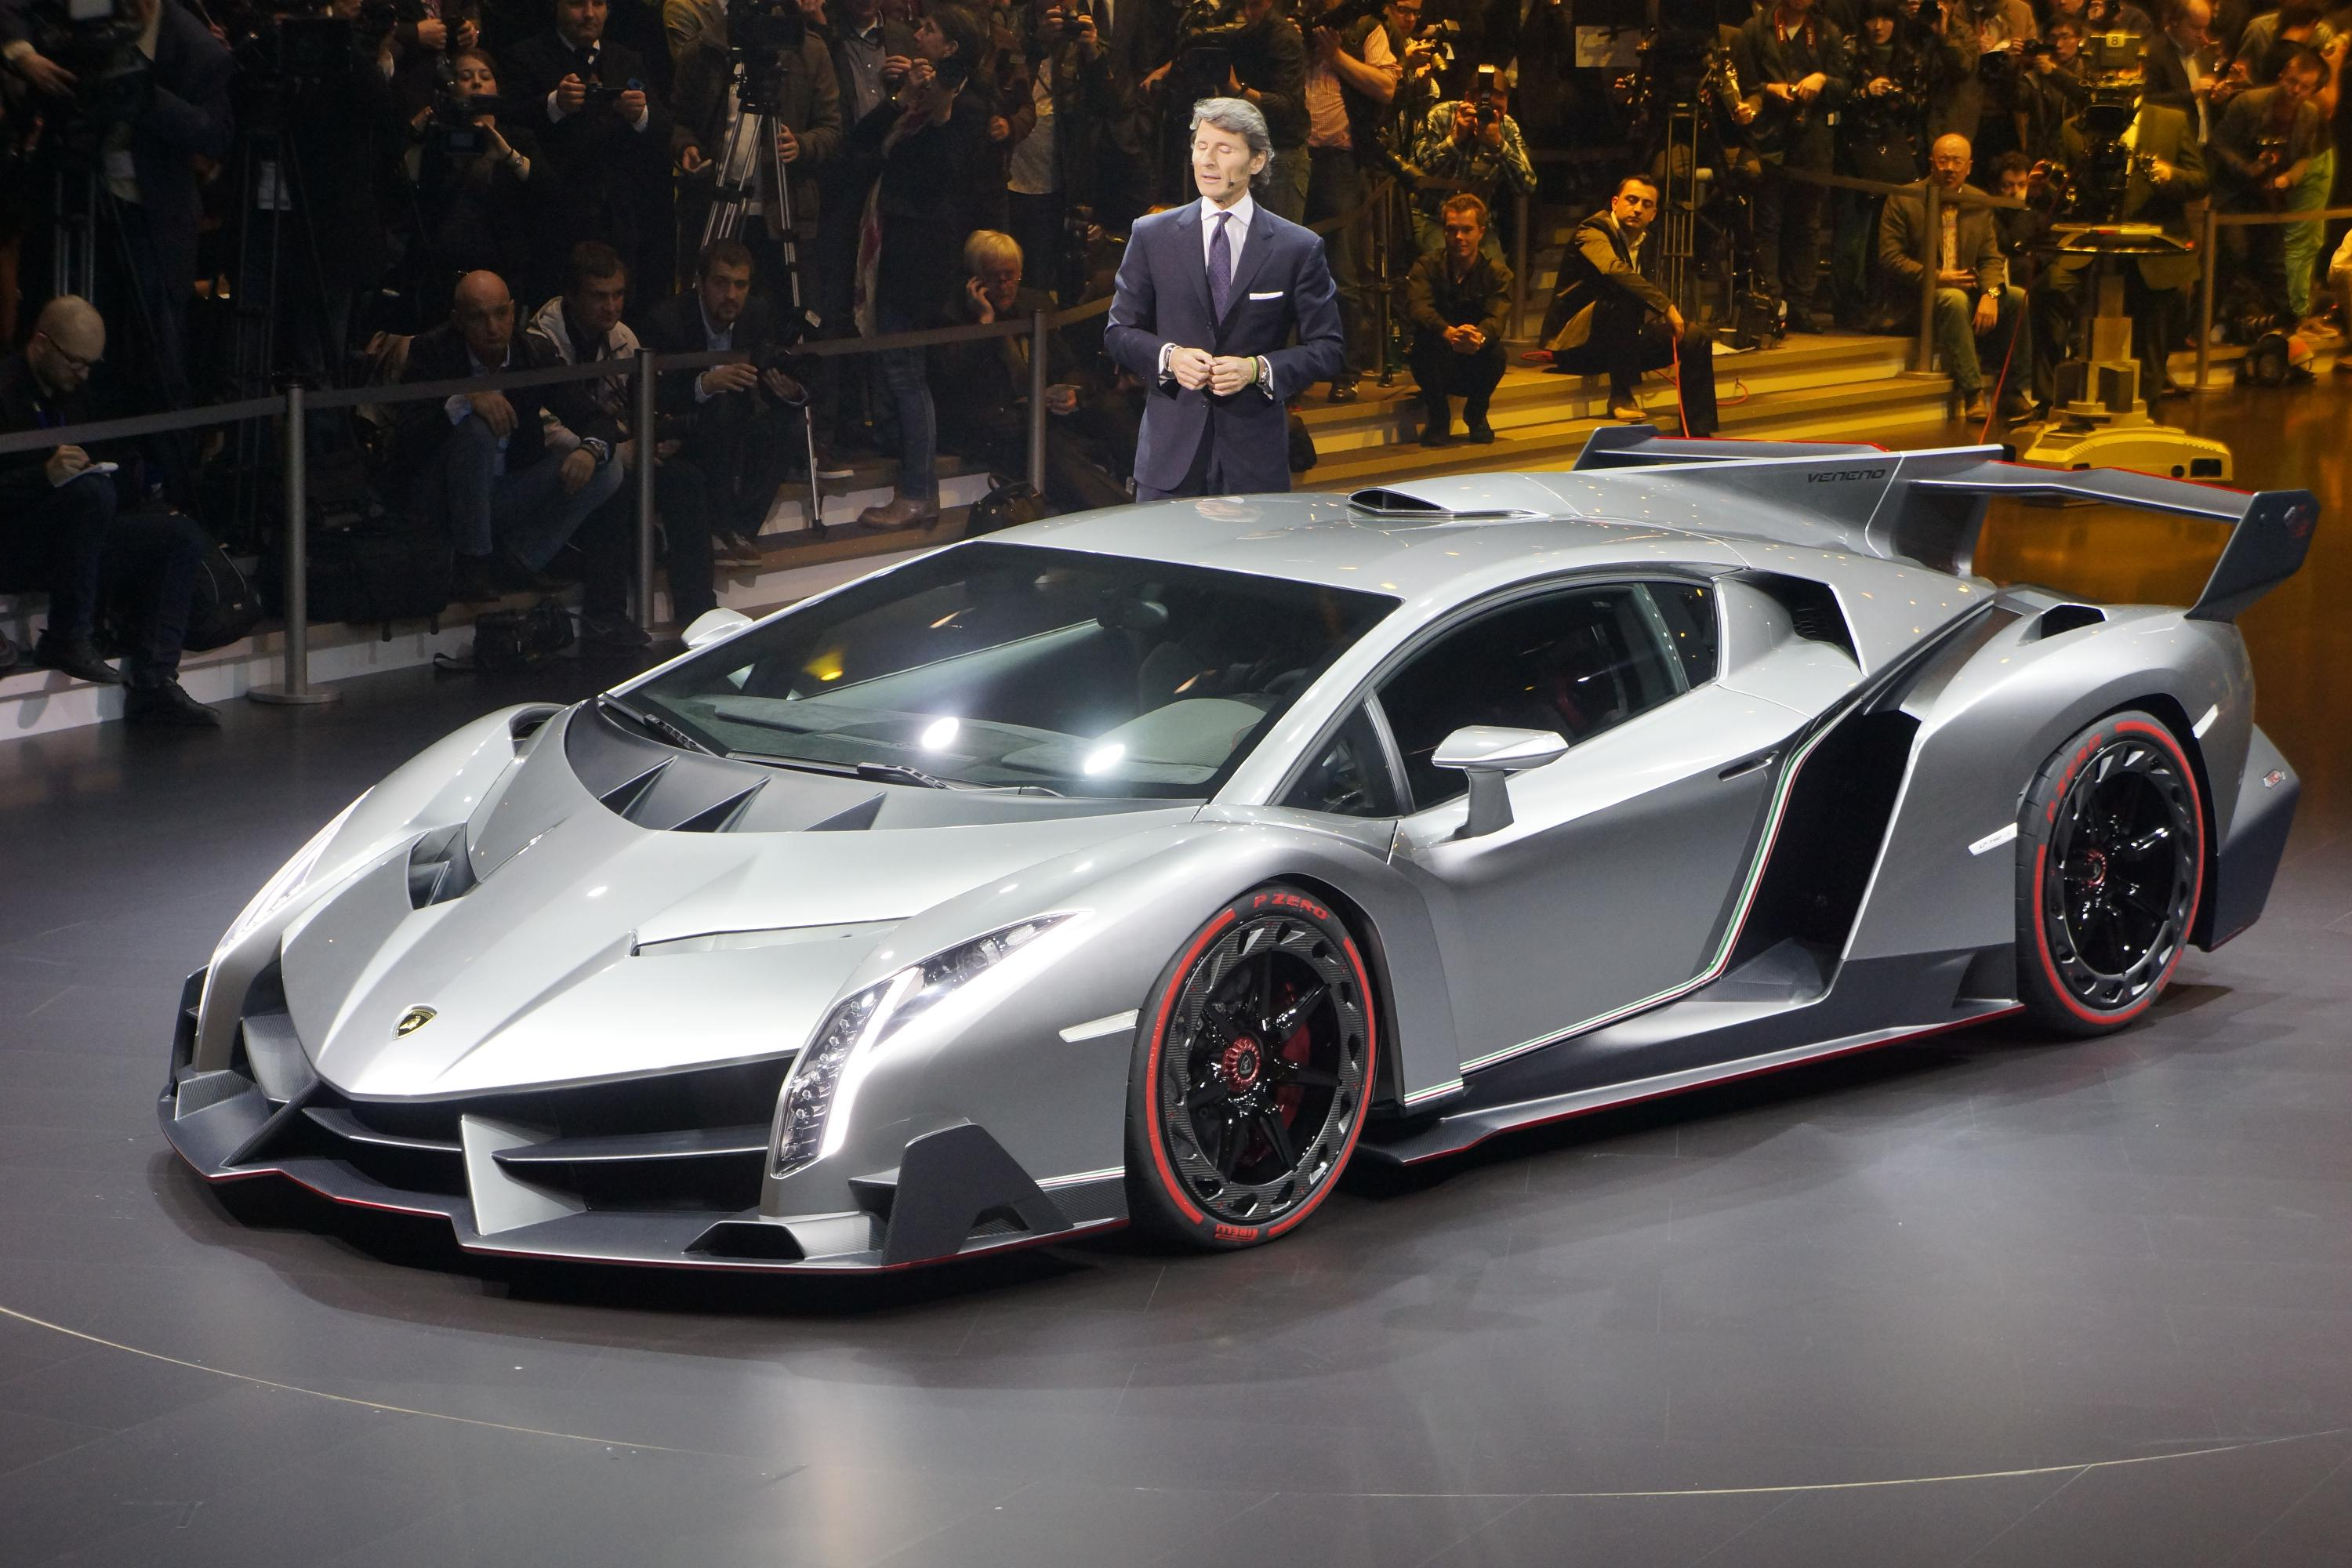 Worlds Most Expensive Cars 2015 - Lamborghini Veneno